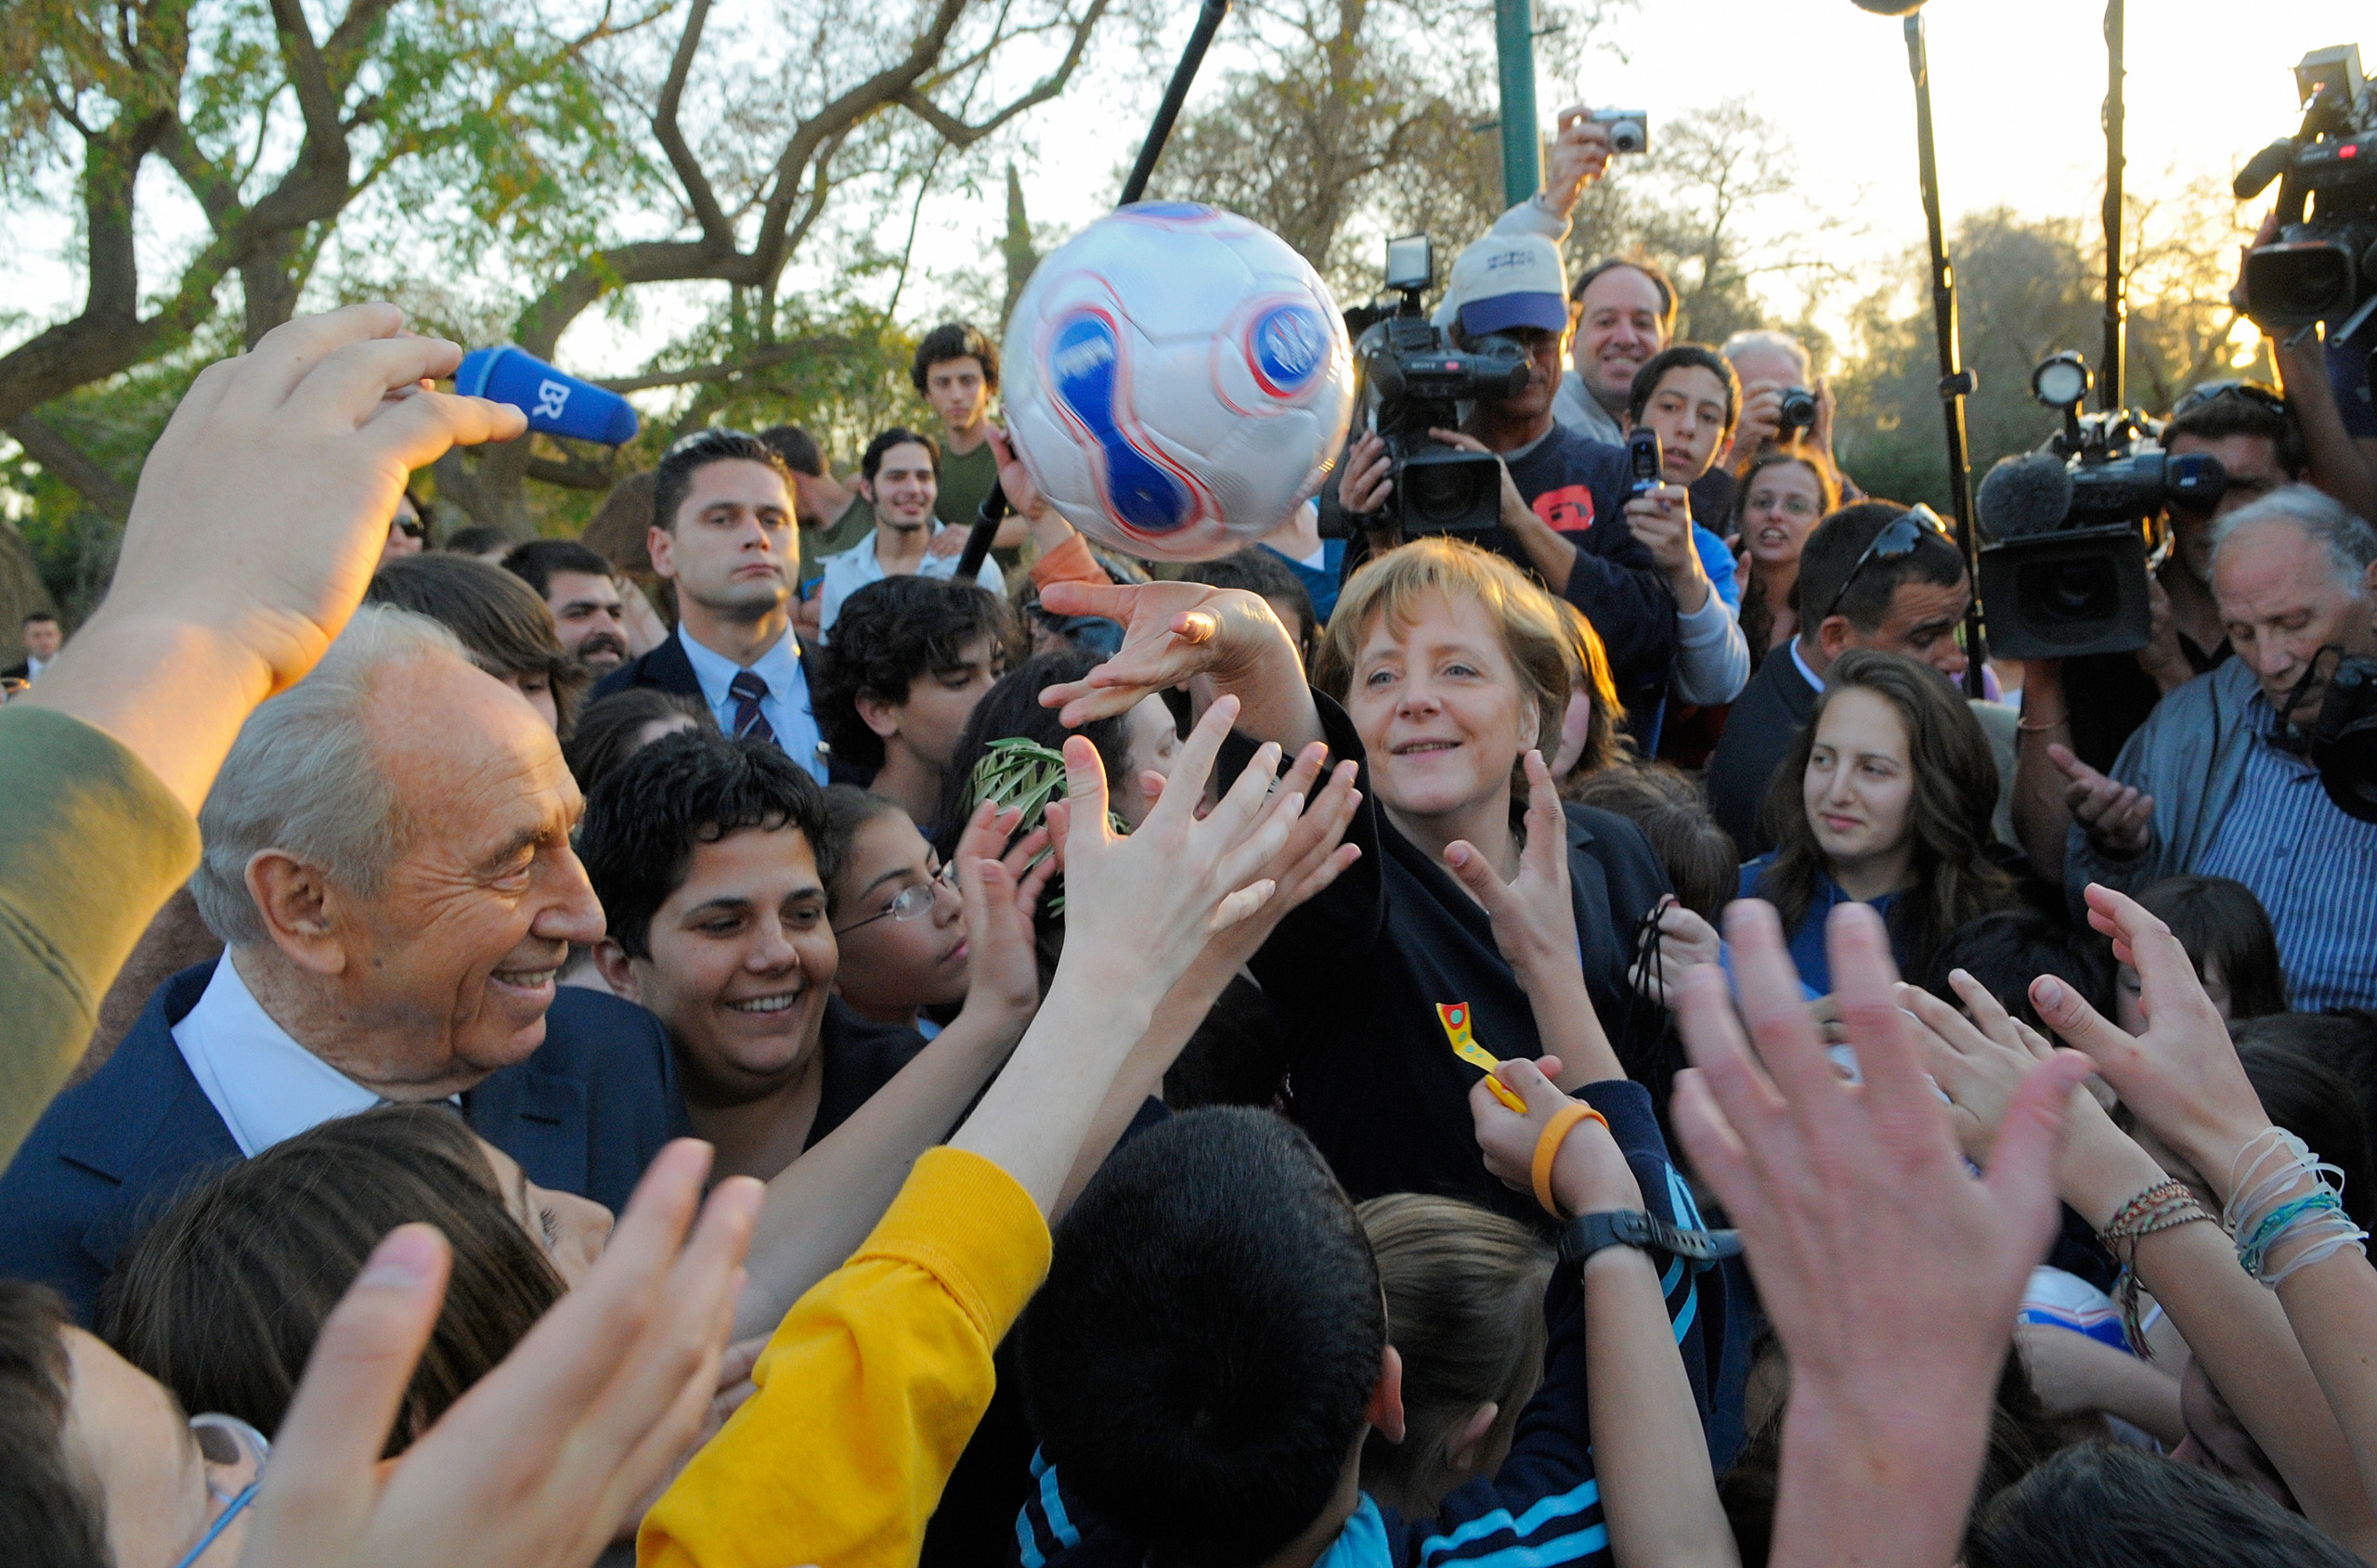 Chancellor Angela Merkel hands over soccer balls as a gift to kids, while she visits the Kibbuz Sde Boker togther with the then president of Israel, Shimon Peres. Merkel visited the Kibbuz, at the beginning of the first German-Israeli Government Consultations. March 16, 2008.